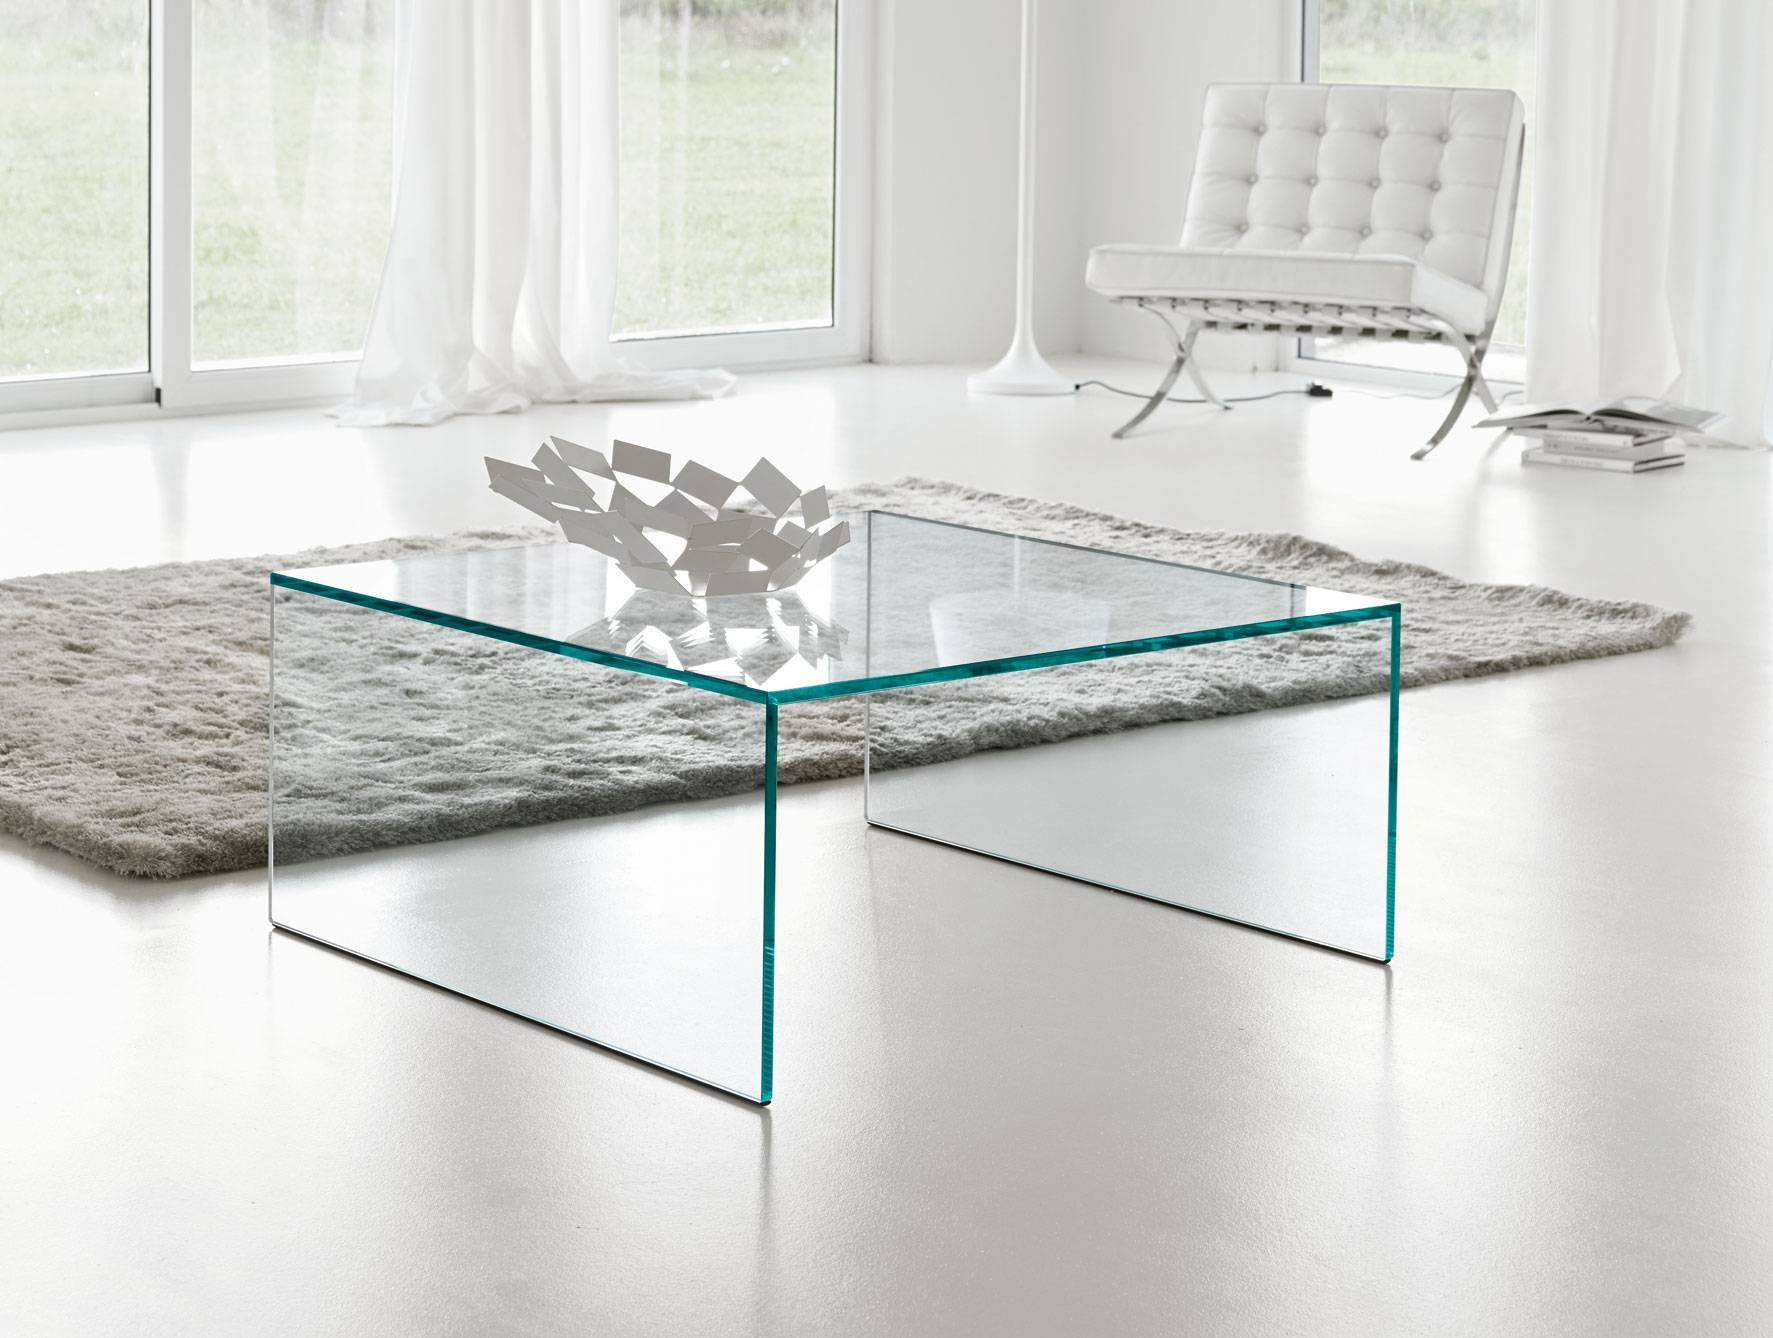 Nella Vetrina Tonelli Eden Modern Italian Square Coffee Table inside Square Glass Coffee Table (Image 10 of 15)